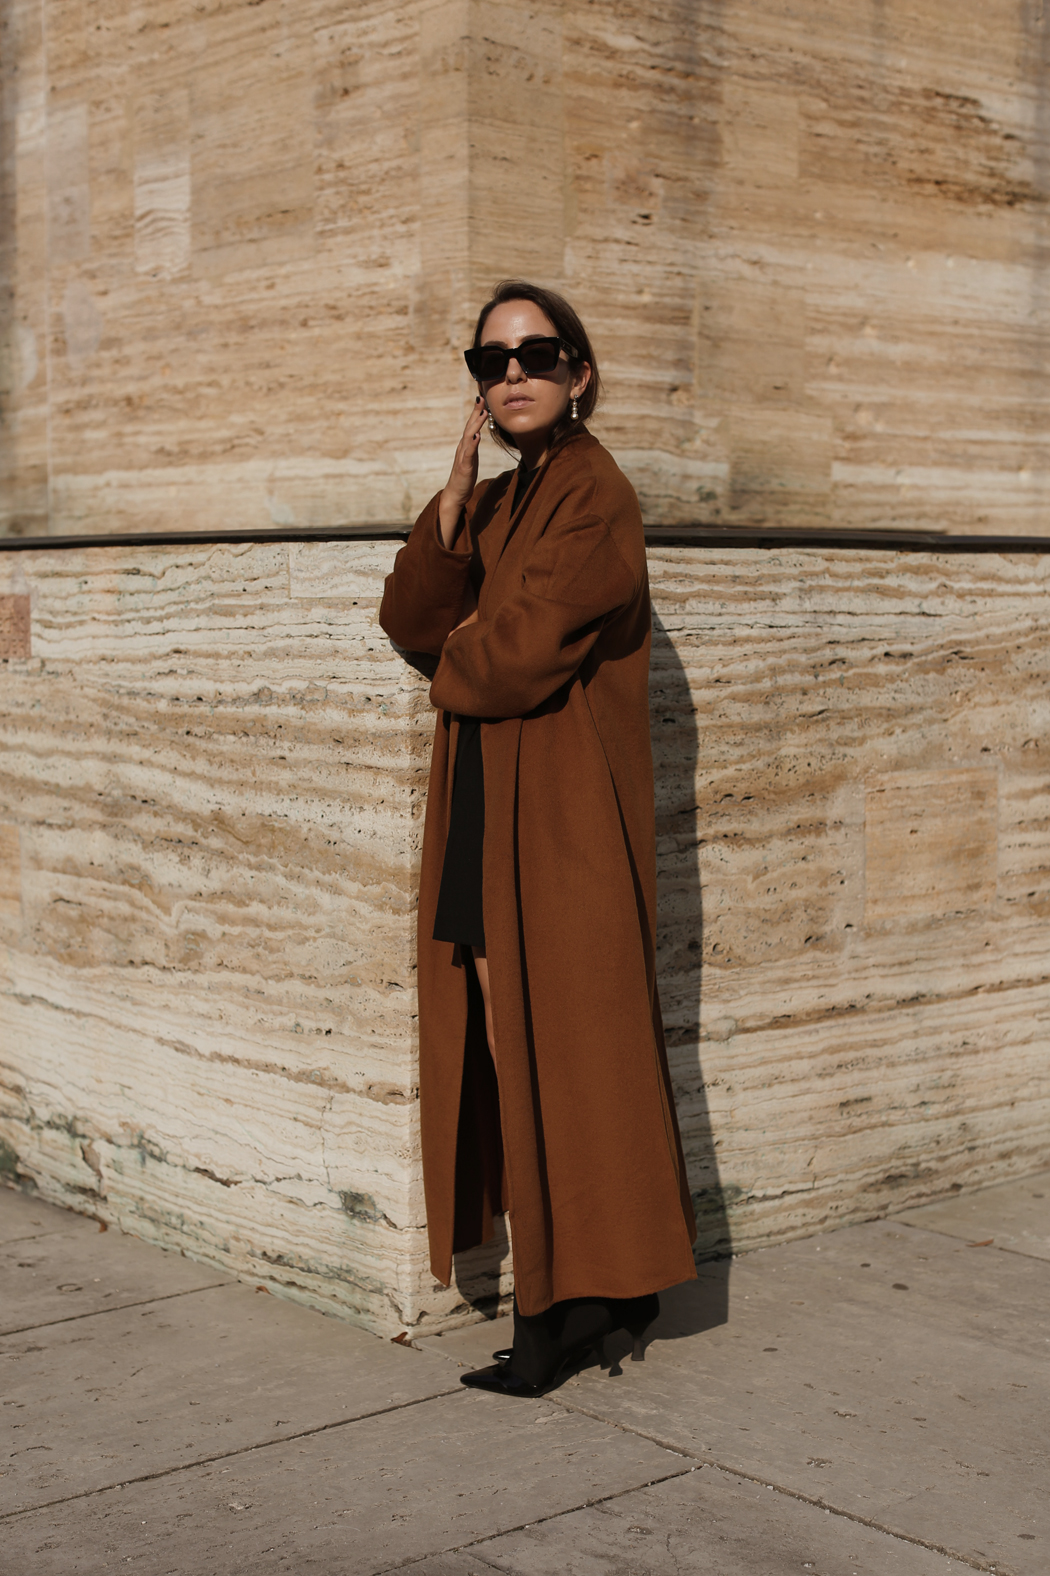 Outfit: The Brown And Other Stories Coat - by Fiona Dinkelbach